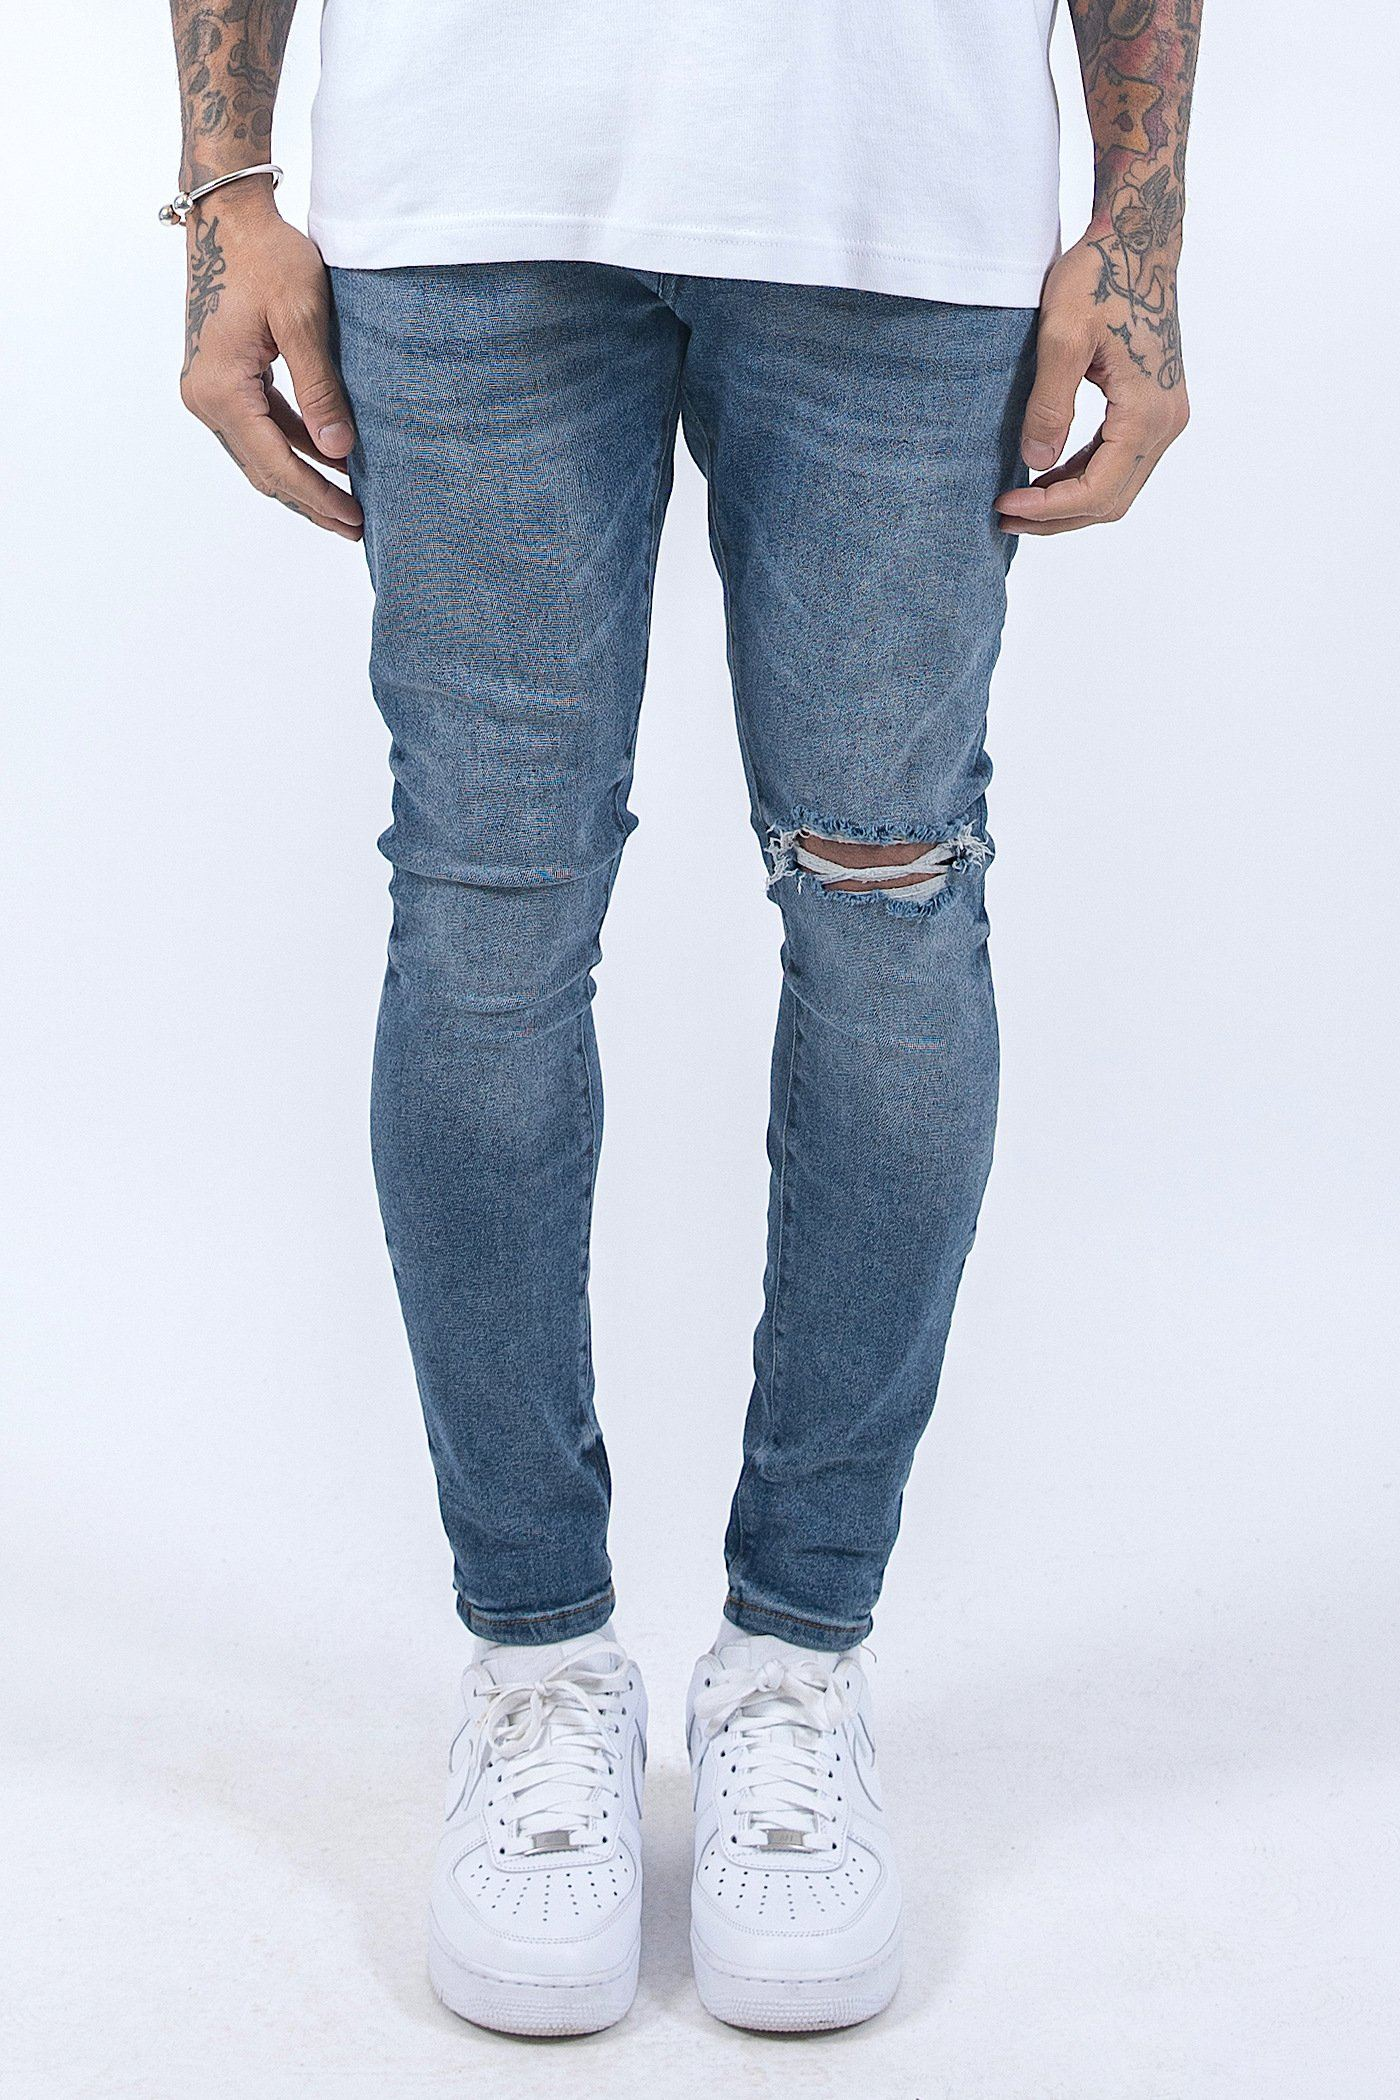 Ferri Destroyed Jeans Vintage Indigo - PEGADOR - Dominate the Hype